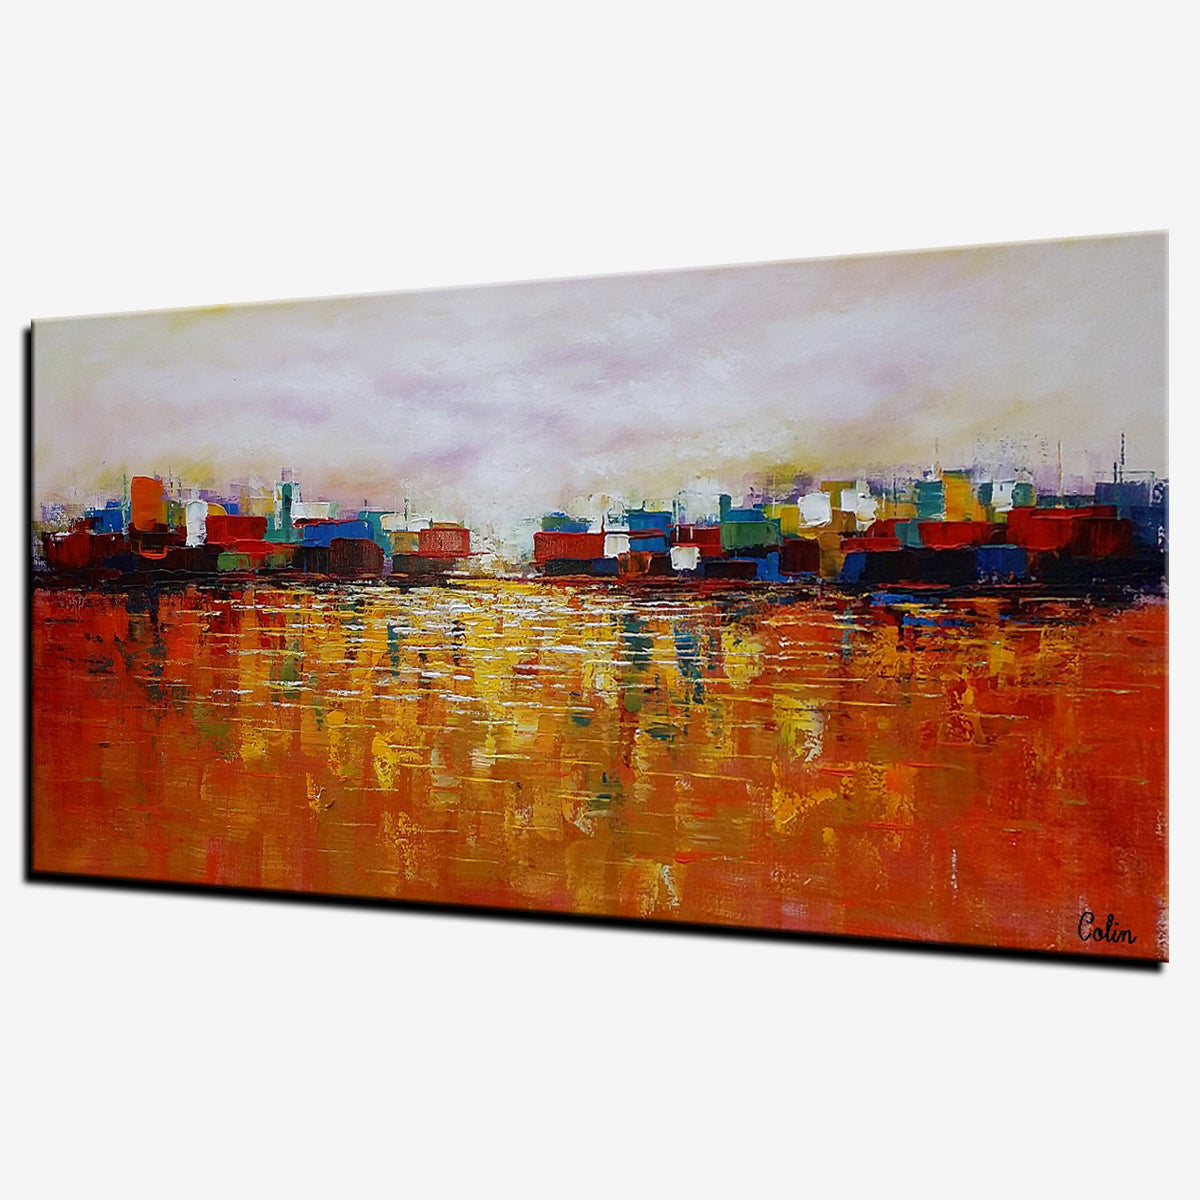 Cityscape Art, Abstract Painting, Bedroom Wall Art, Abstract Landscape Painting, Canvas Art, Wall Art, Original Artwork, 327